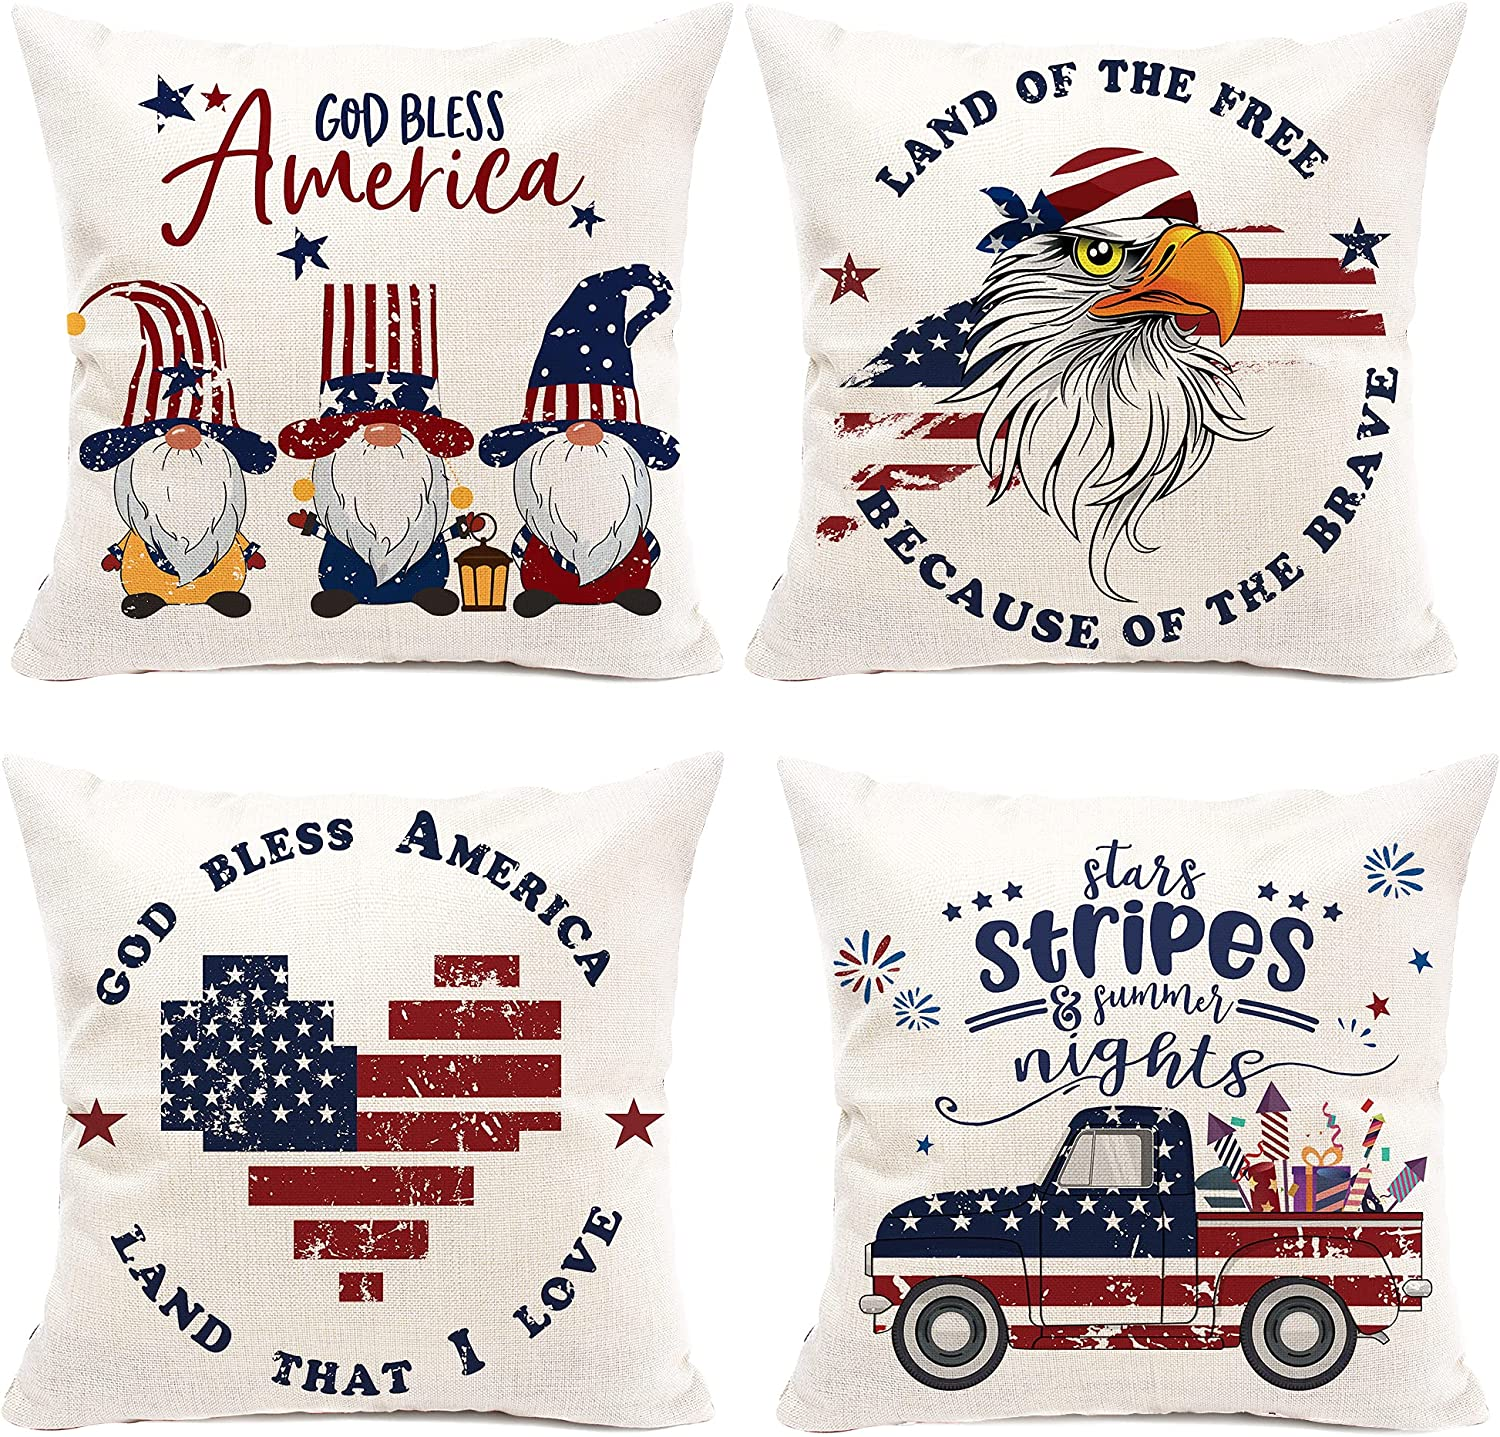 pinata 4th of July Pillow Cover 18x18'' Summer Patriotic Independence Day Pillowcase Set of 4, American Flag Rustic Retro Red Blue Outdoor Decor with Gnome, Eagle, Heart, Truck, Star for Home Holiday